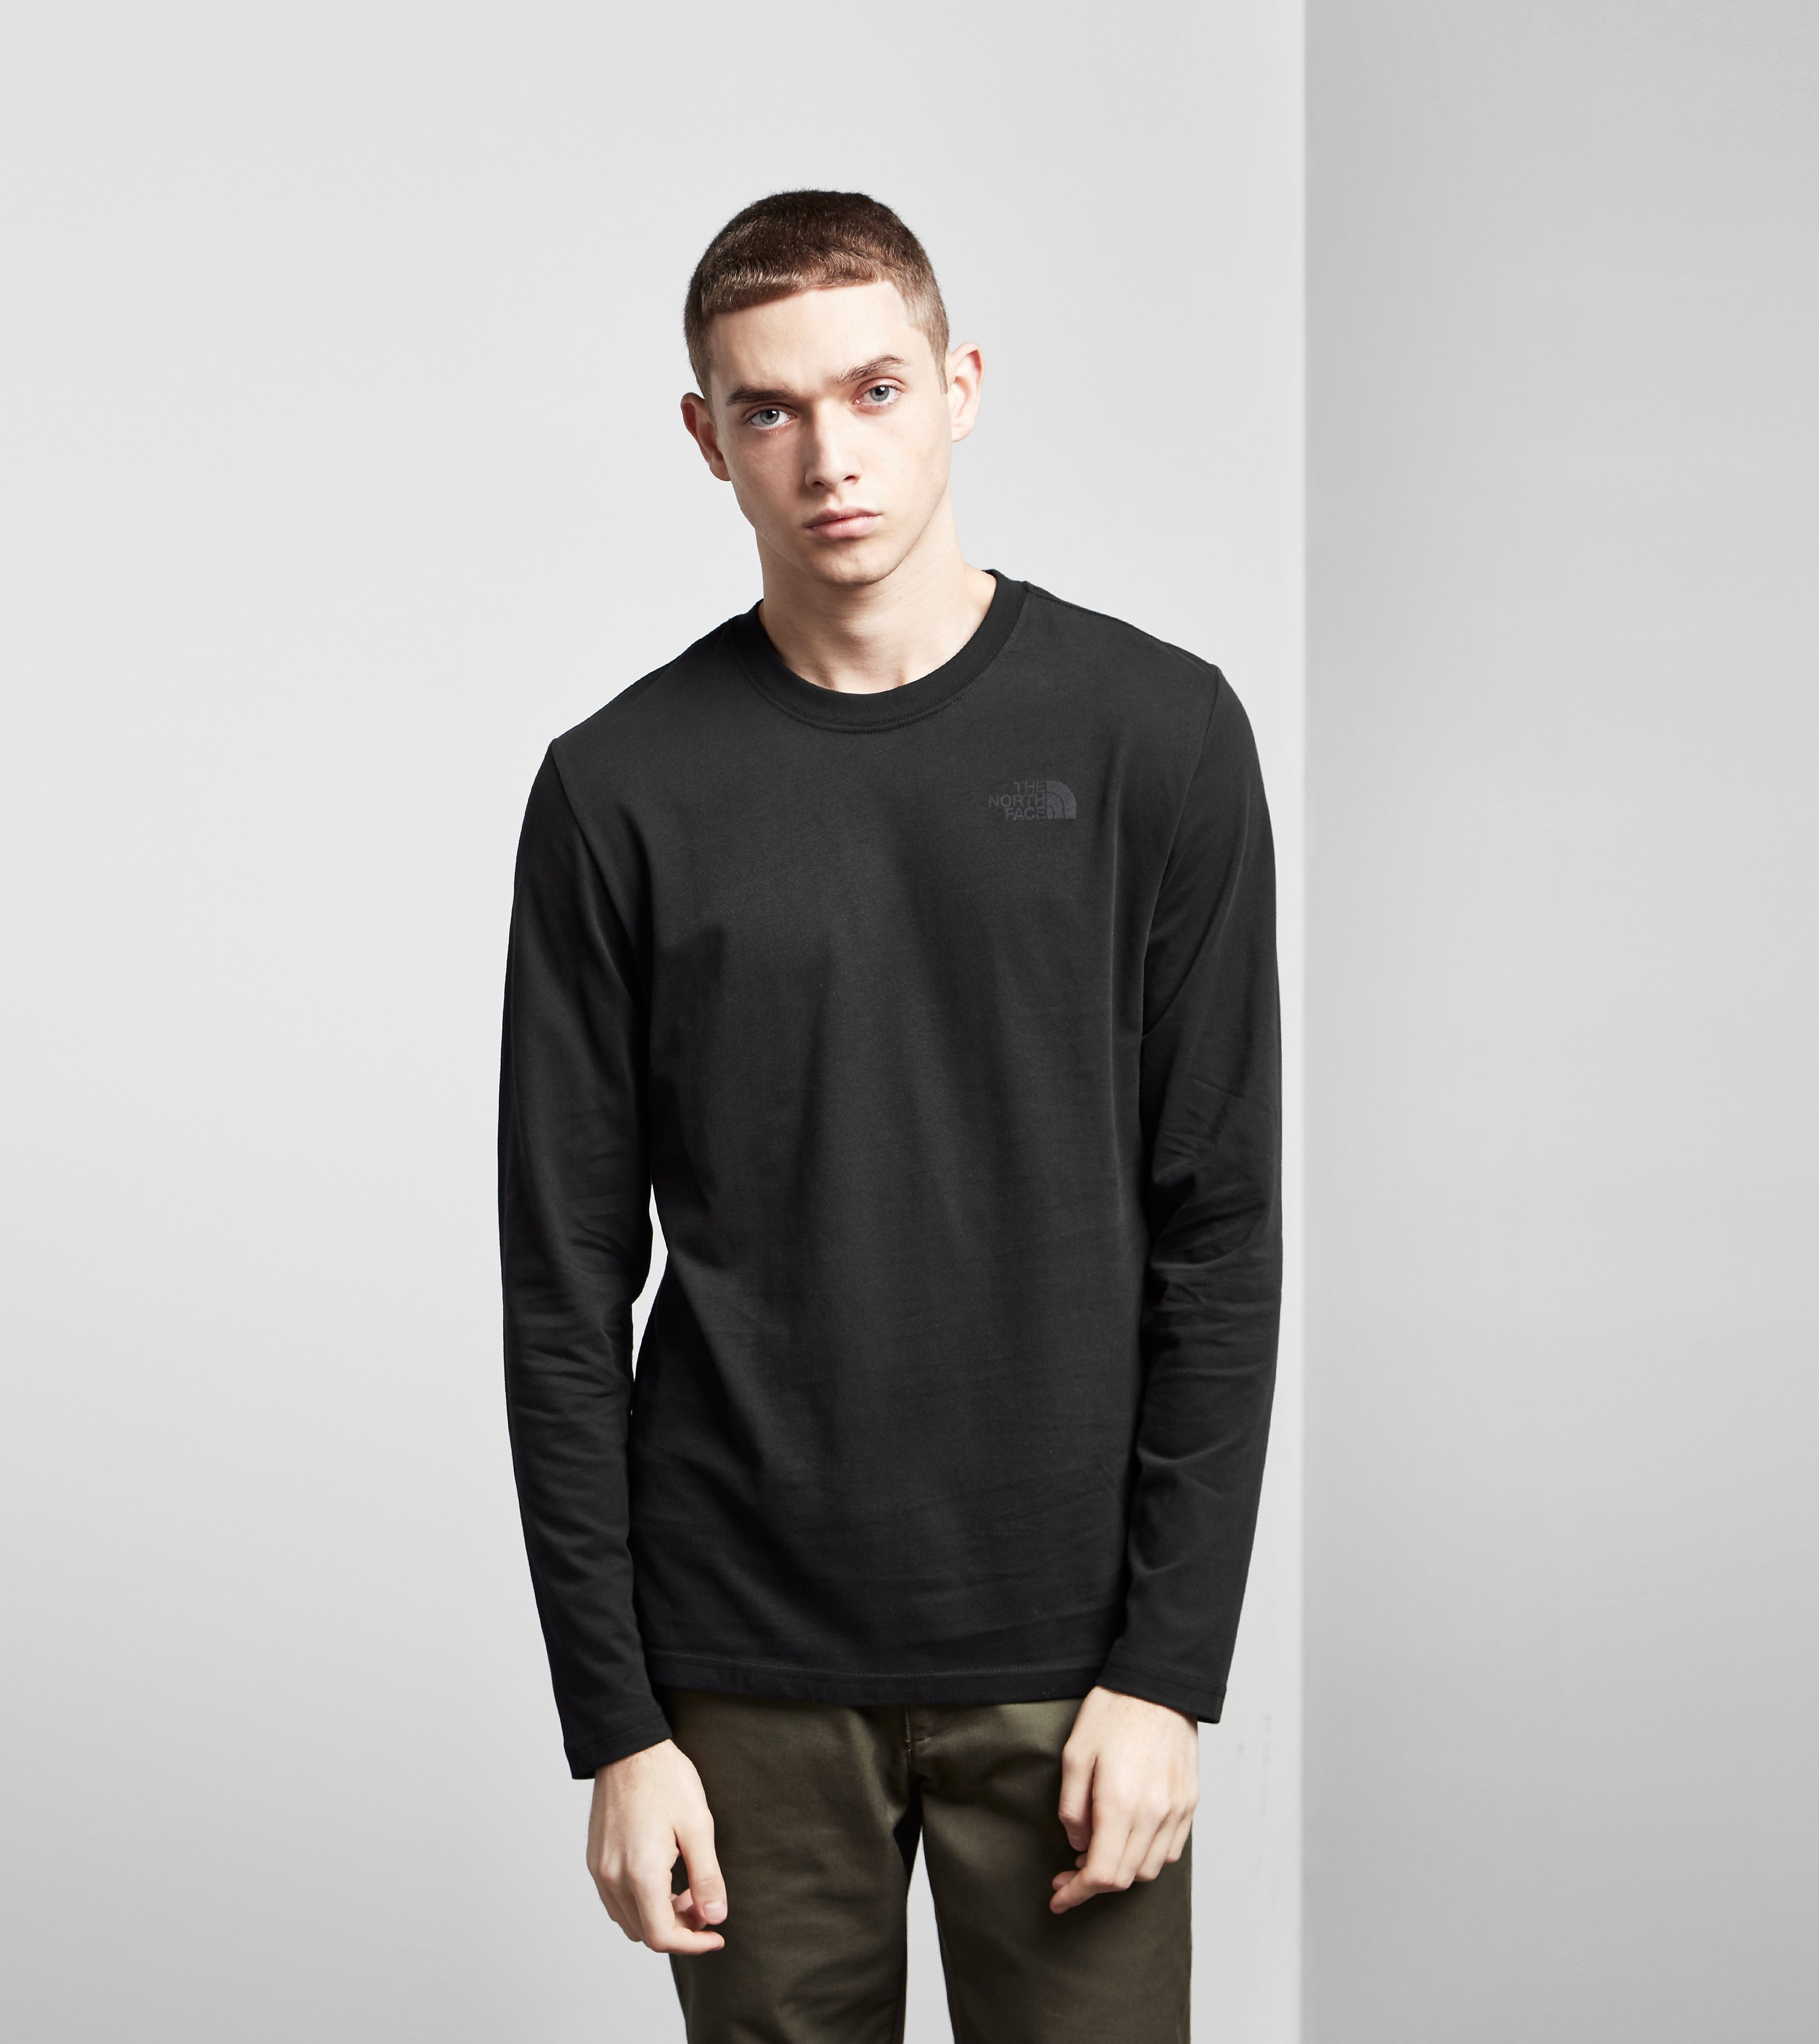 The North Face Fine Box Long-Sleeved T-Shirt - size? Exclusive